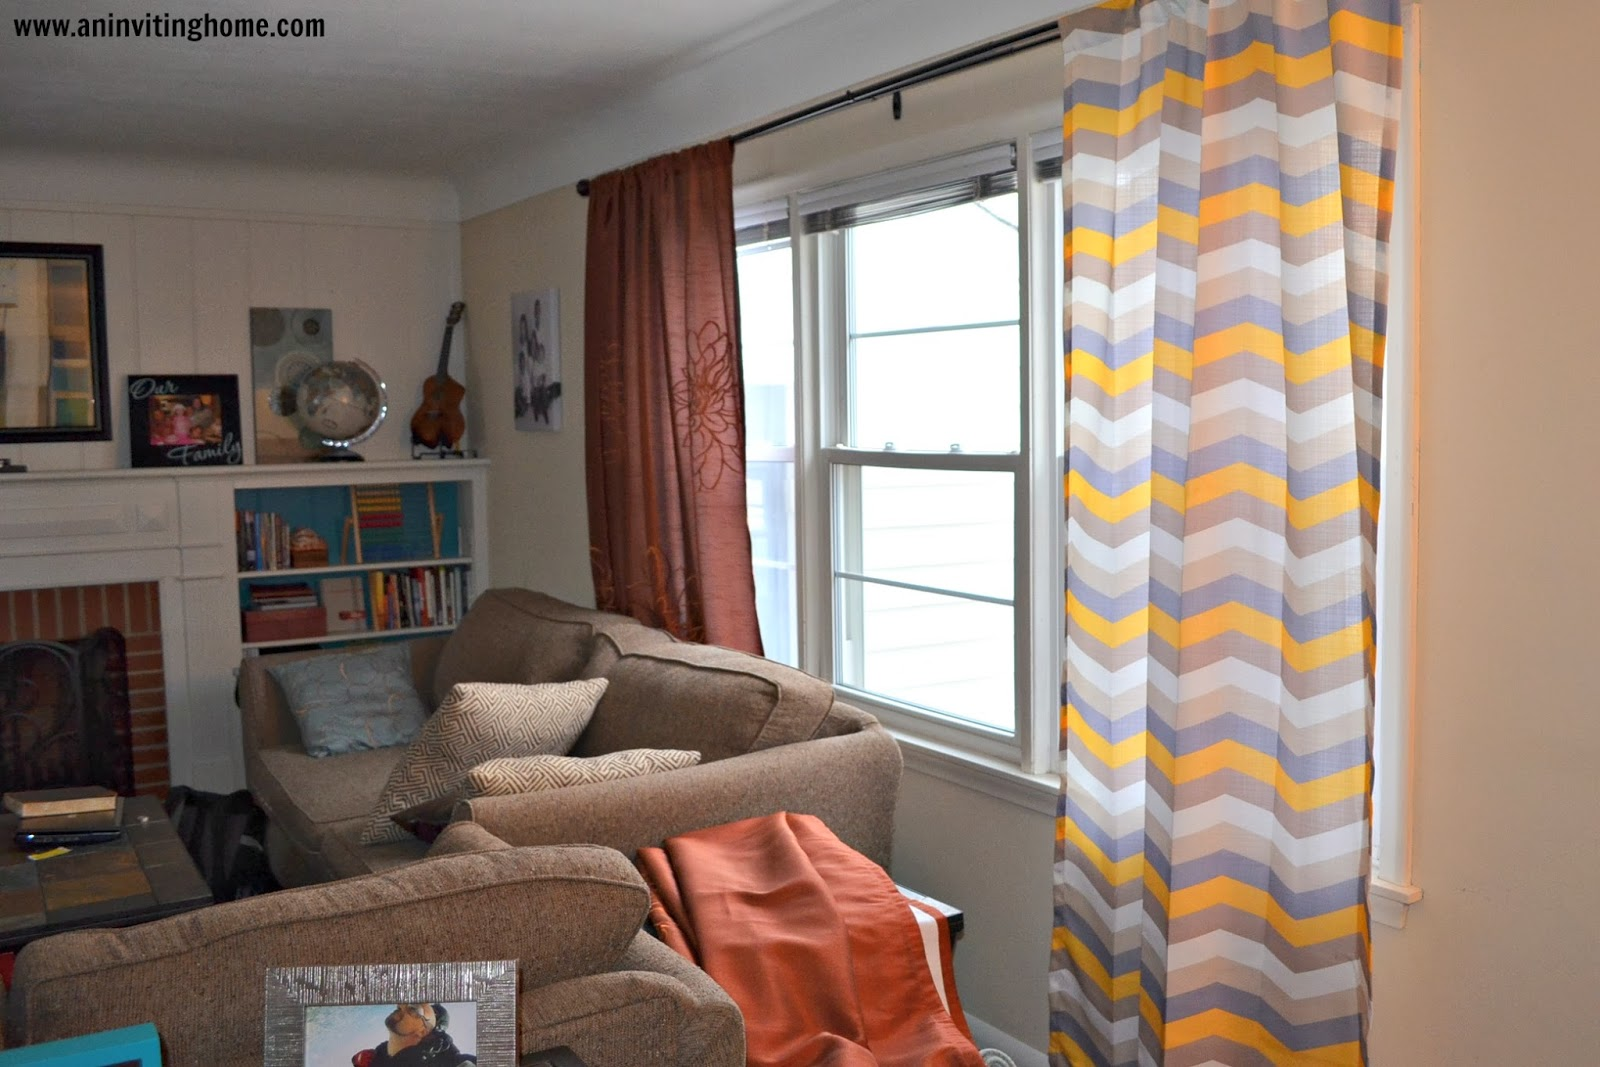 An Inviting Home: The Curtain Process